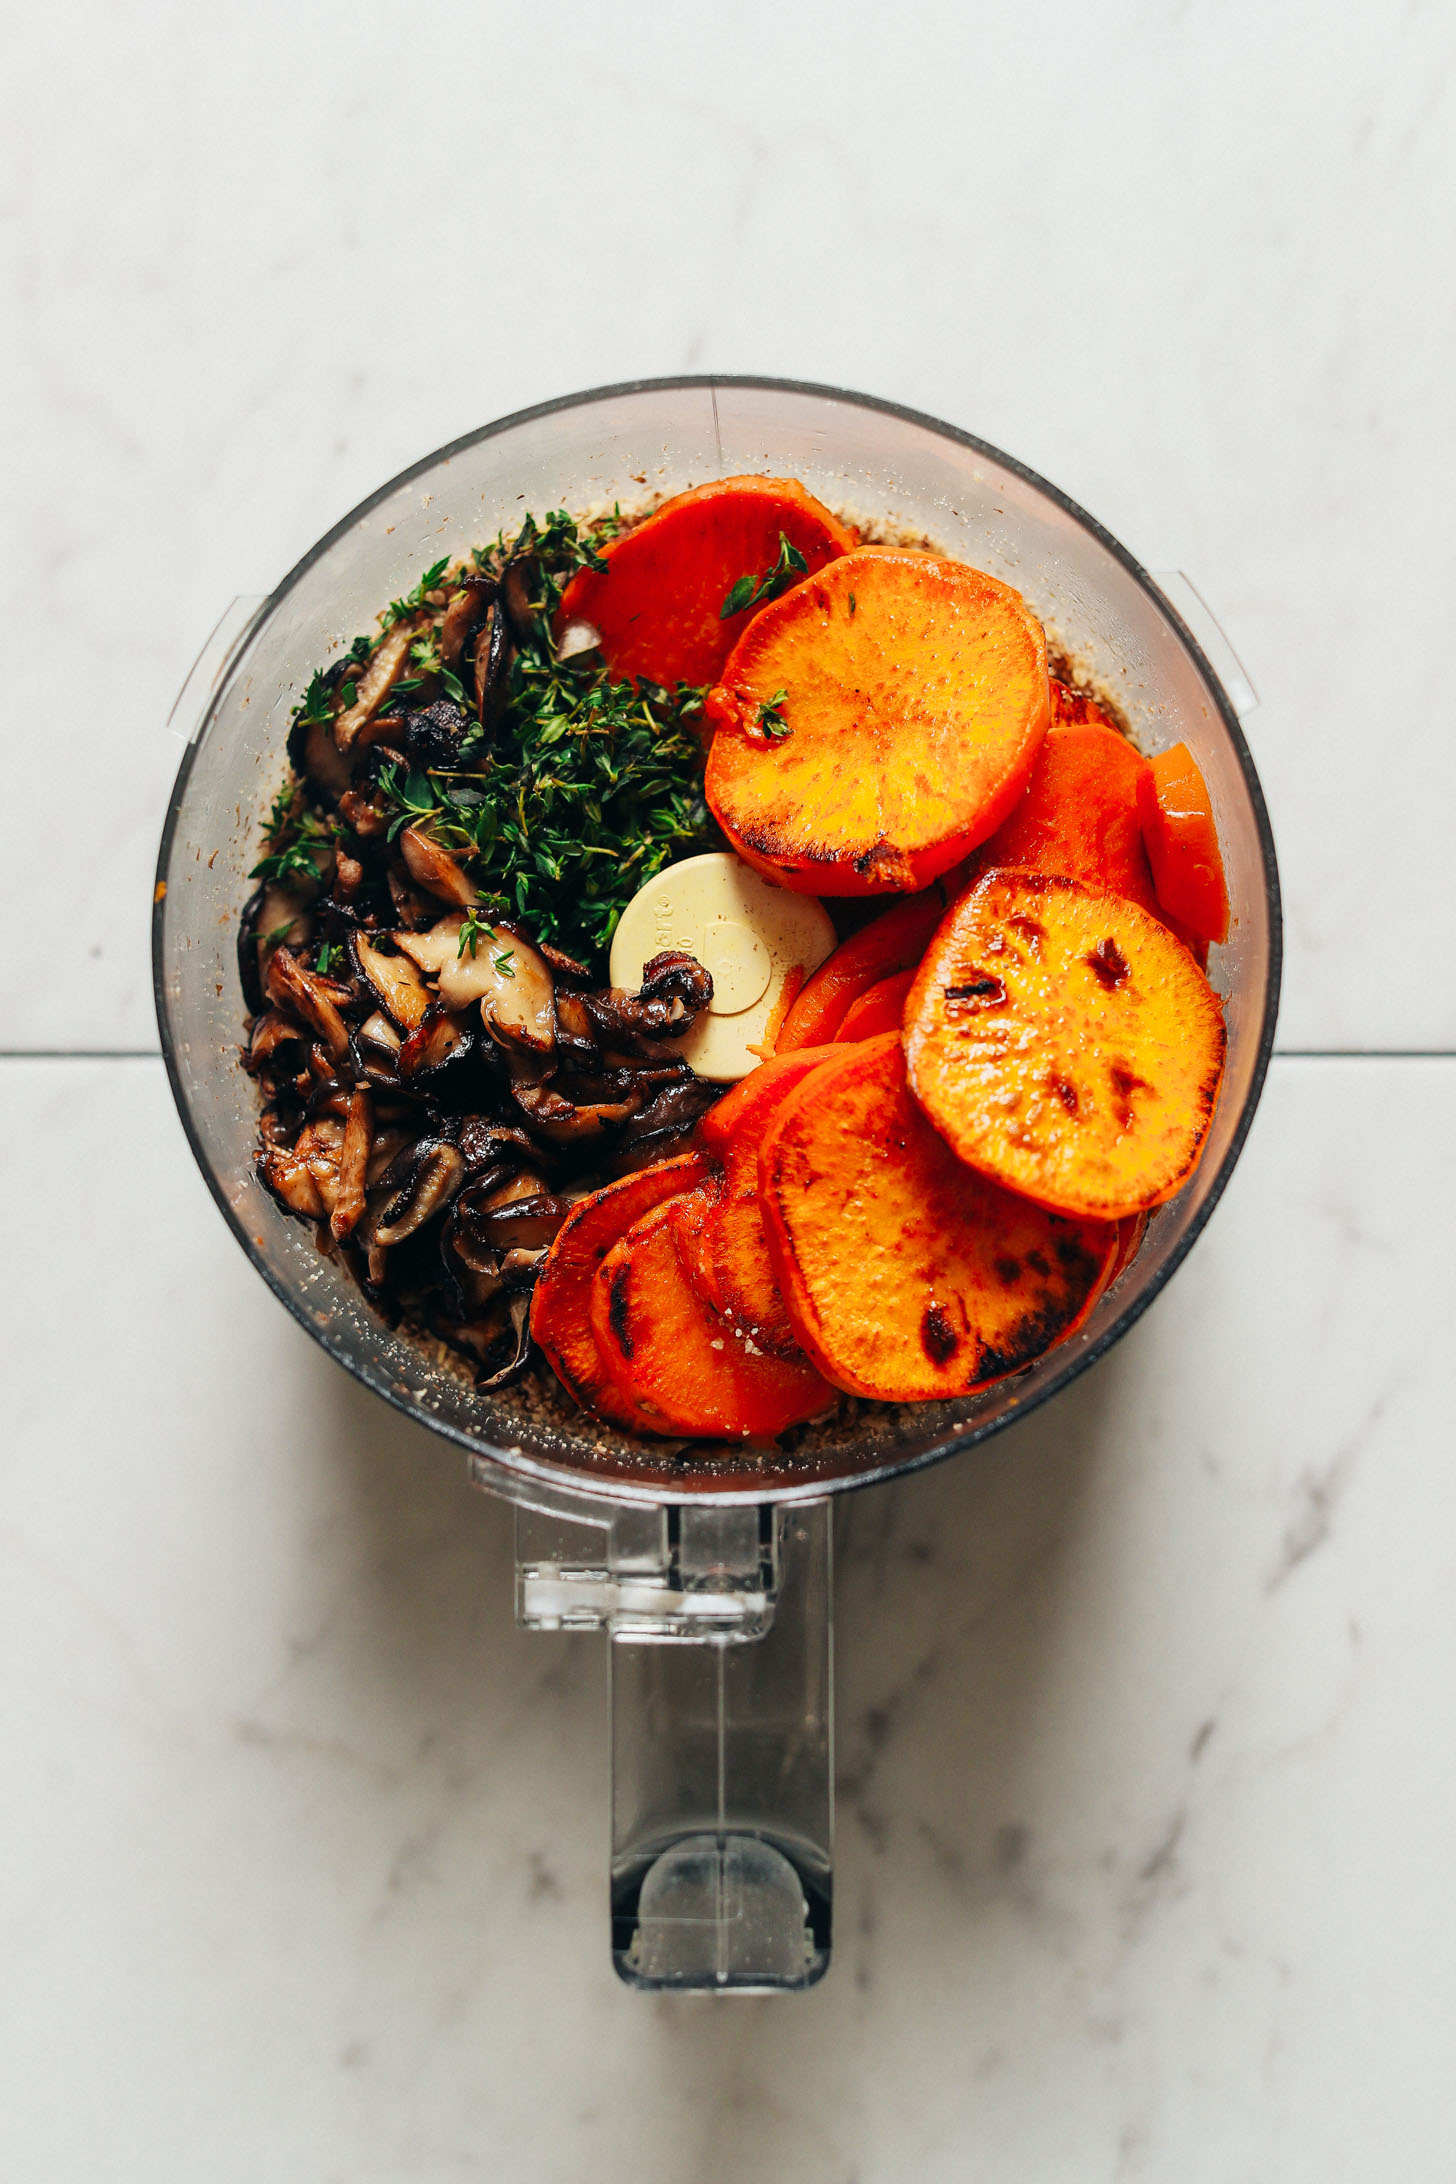 Food processor with mushrooms, sweet potatoes, and other ingredients for making Vegan Holiday Meatloaf